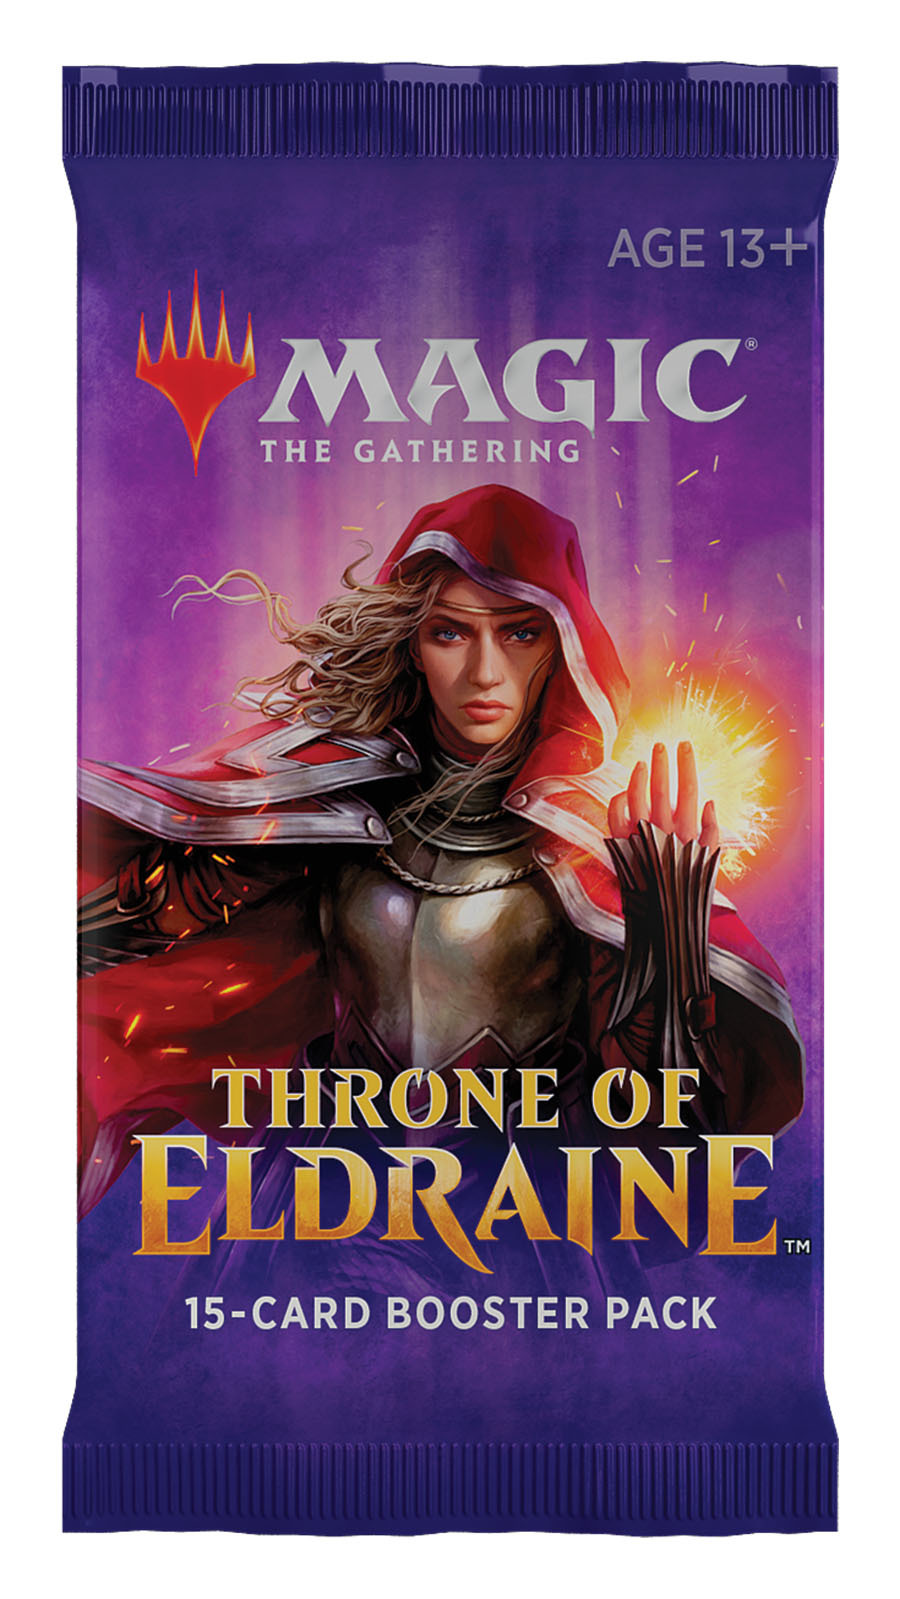 Magic The Gathering: Throne of Eldraine Single Booster image